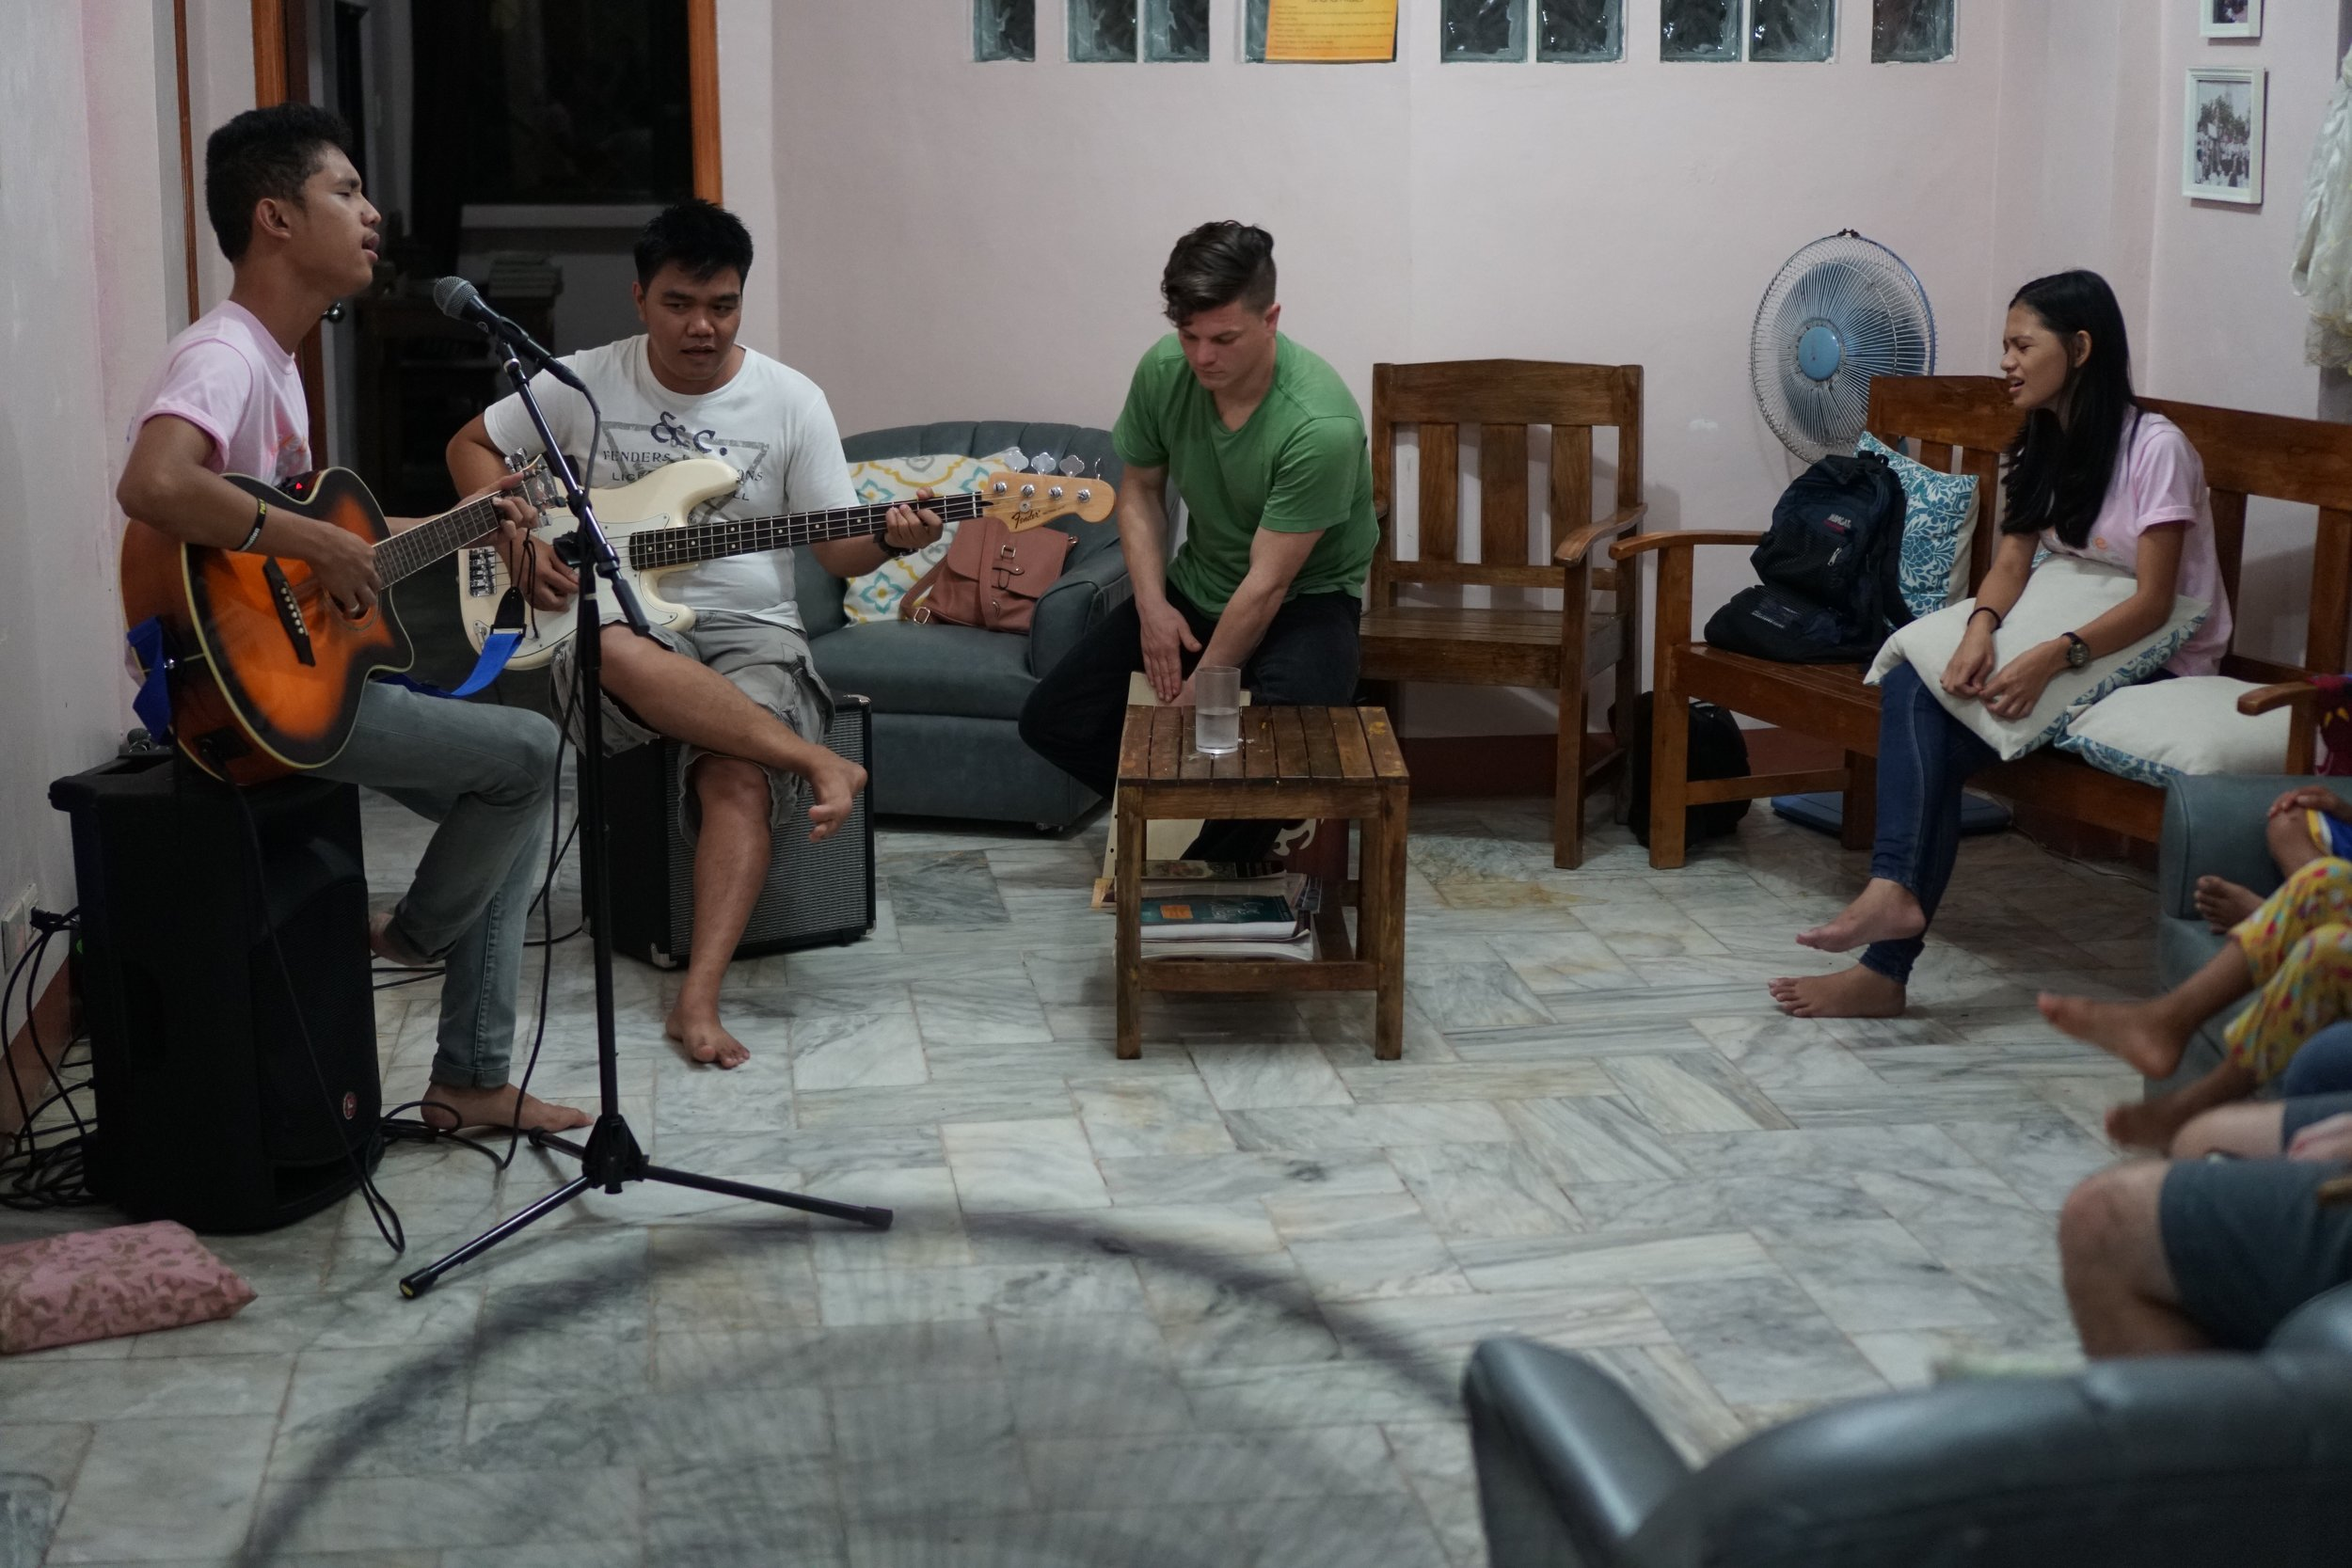 The Filipino love for music and performance often results in more spontaneous moments of worship amongst youth at Tahanan.